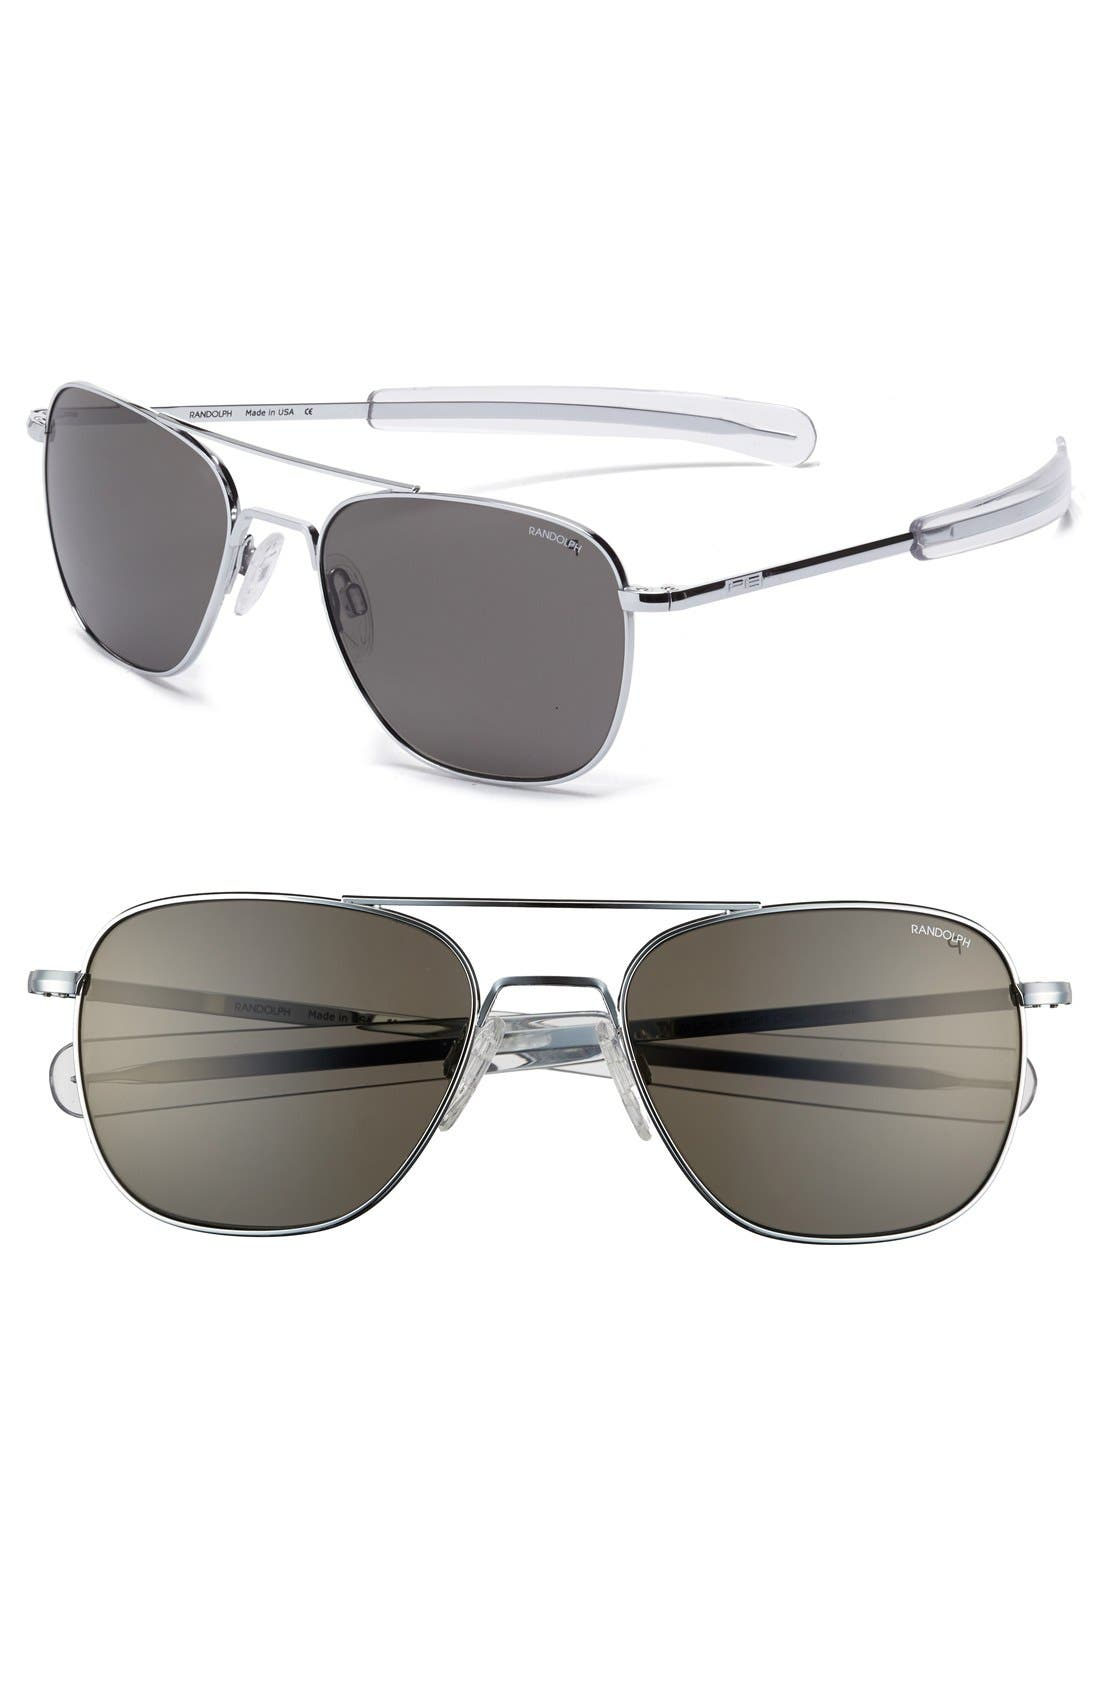 Main Image - Randolph Engineering 55mm Polarized Aviator Sunglasses